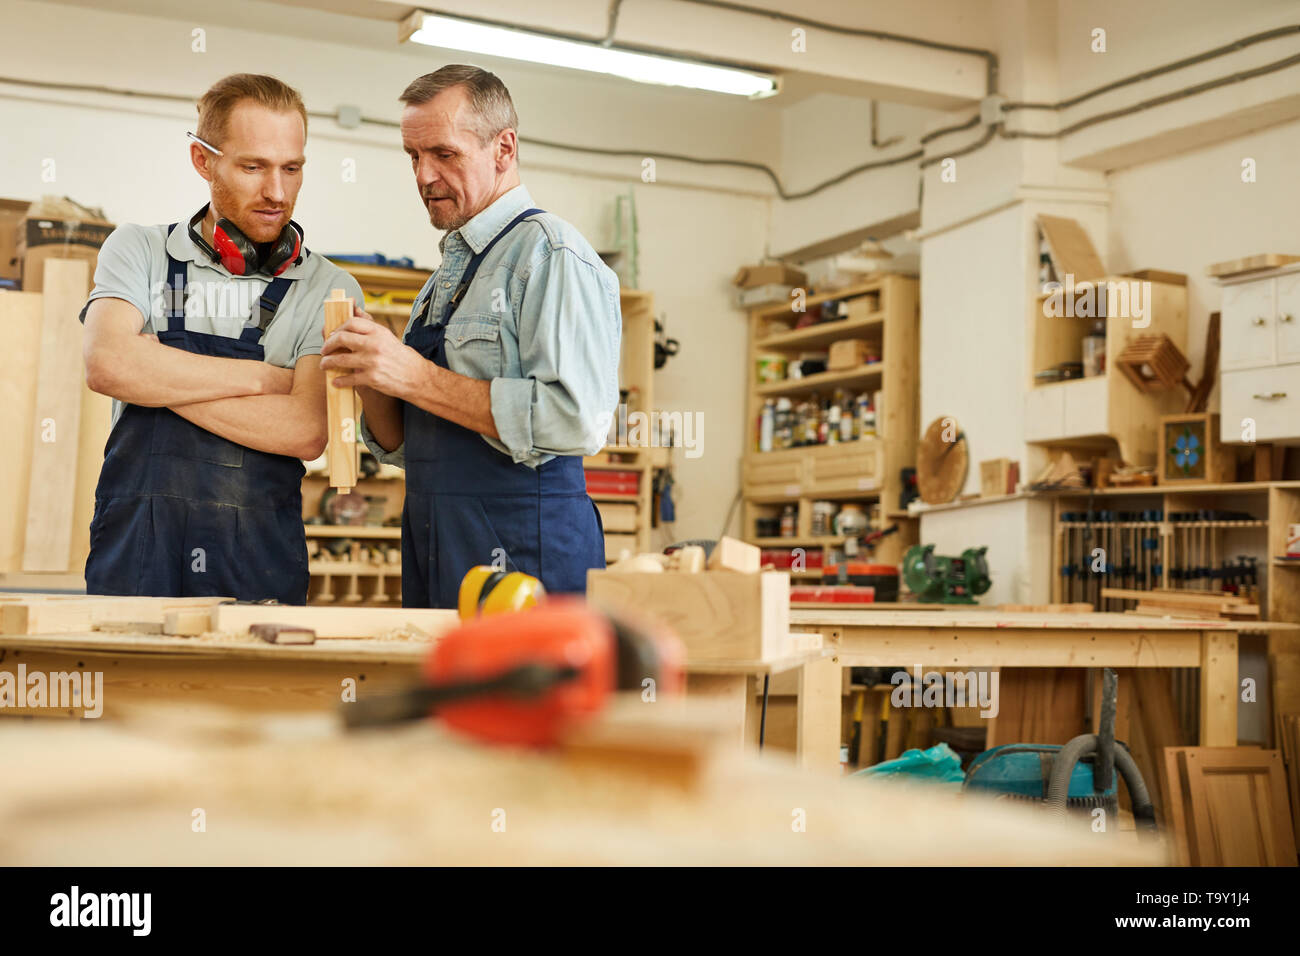 Waist up portrait of senior carpenter teaching apprentice  while working  in joinery workshop, copy space - Stock Image